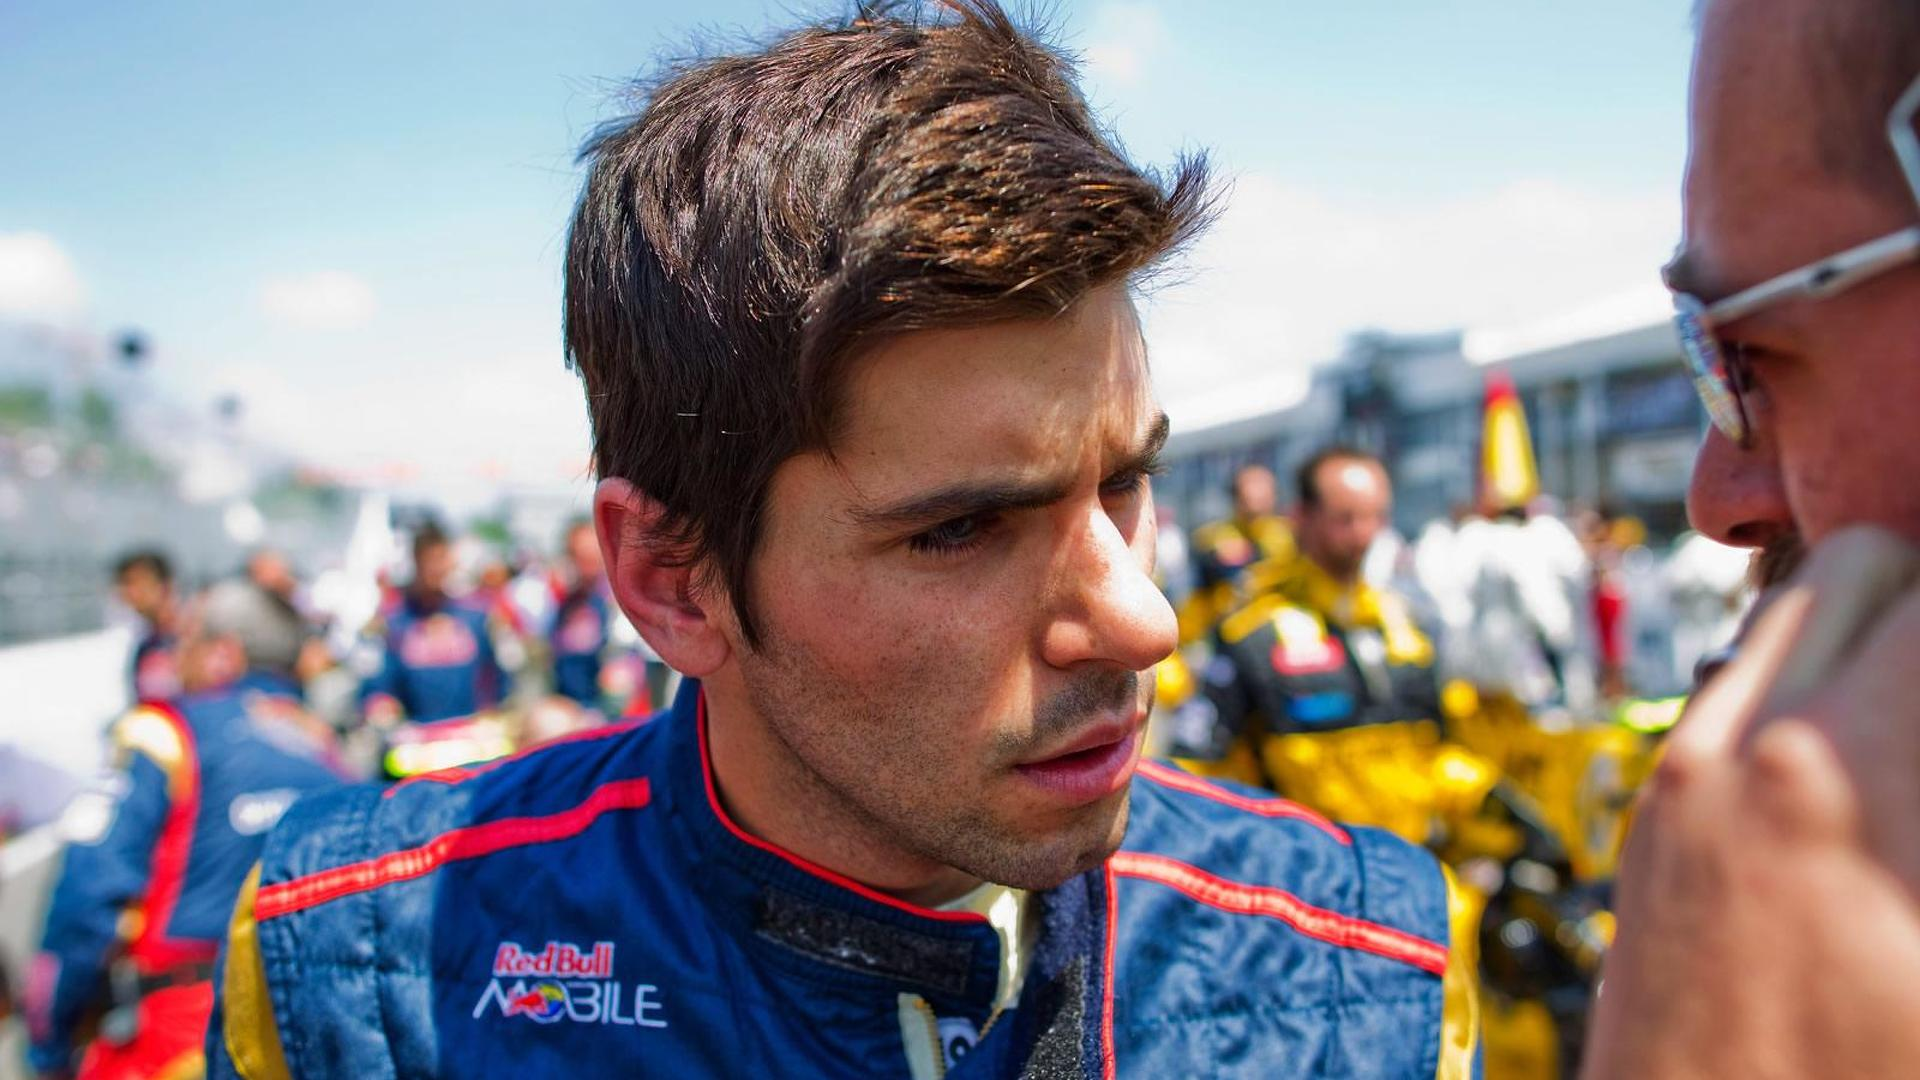 Alguersuari 'sceptical' after 2011 Toro Rosso renewal